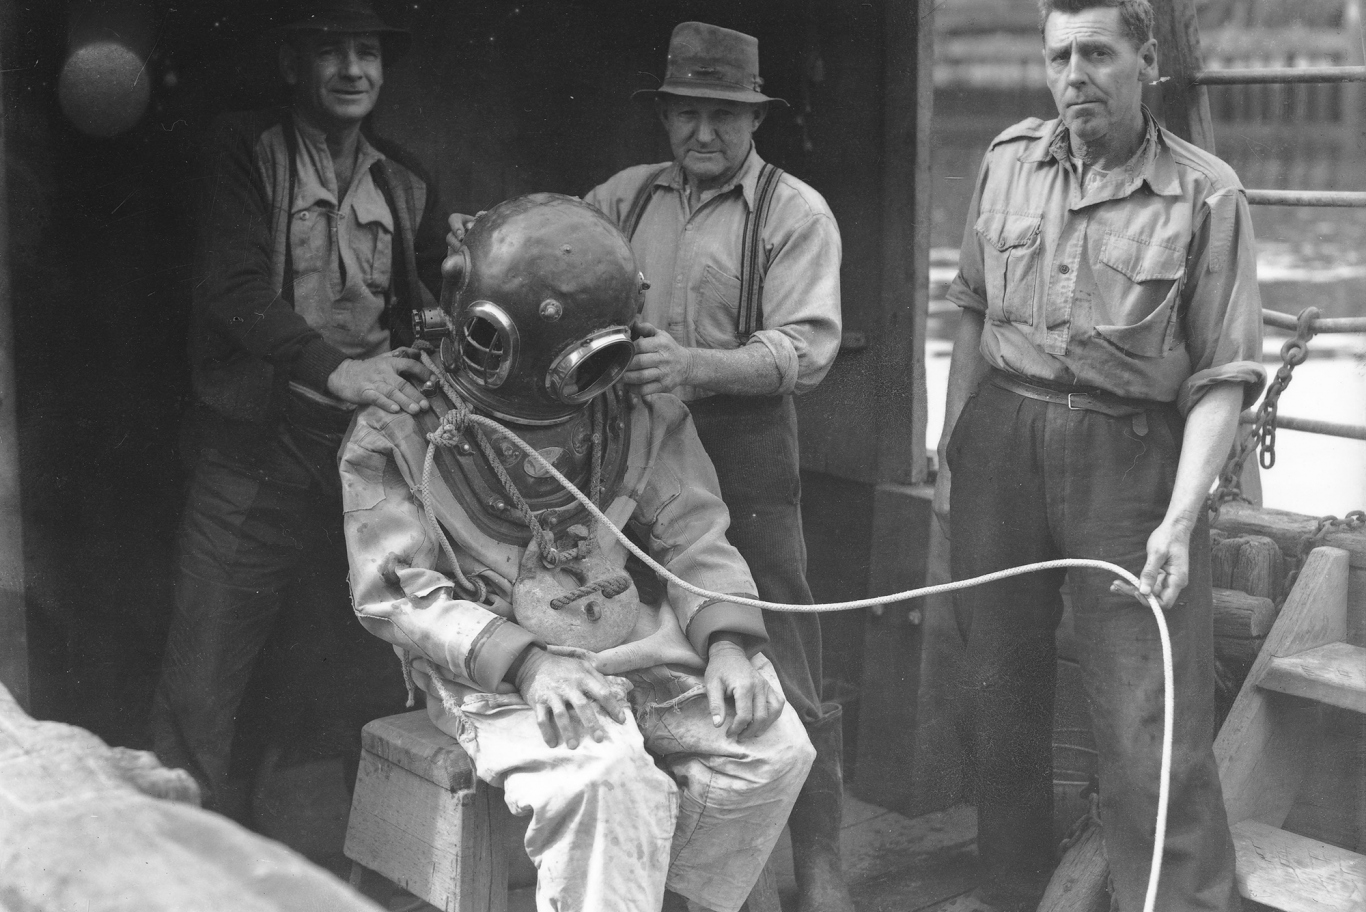 Man in diving suit with other men assisting.